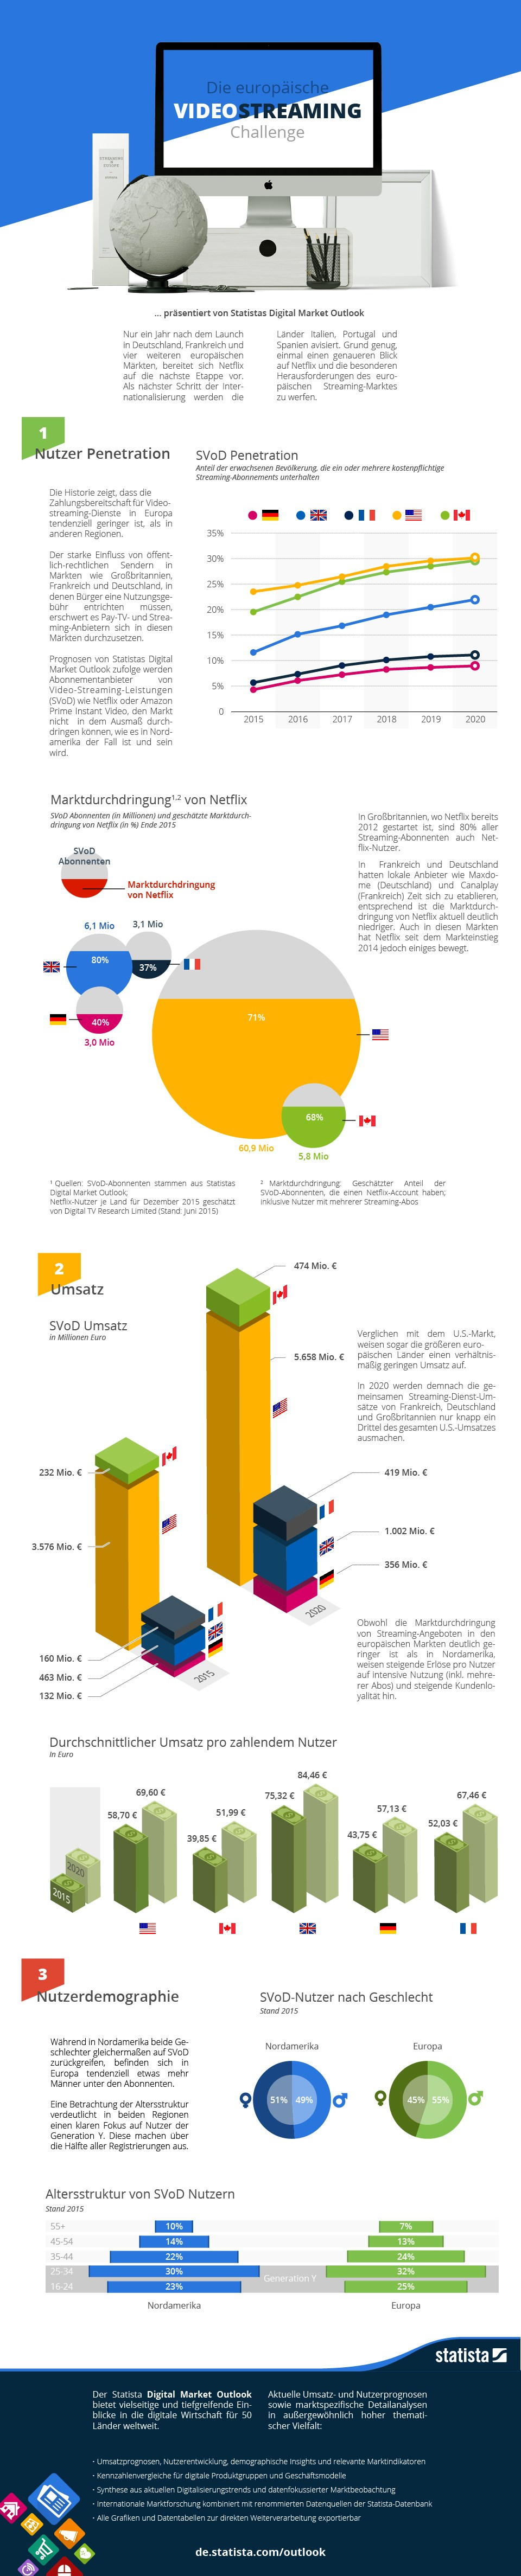 infografik statista video streaming